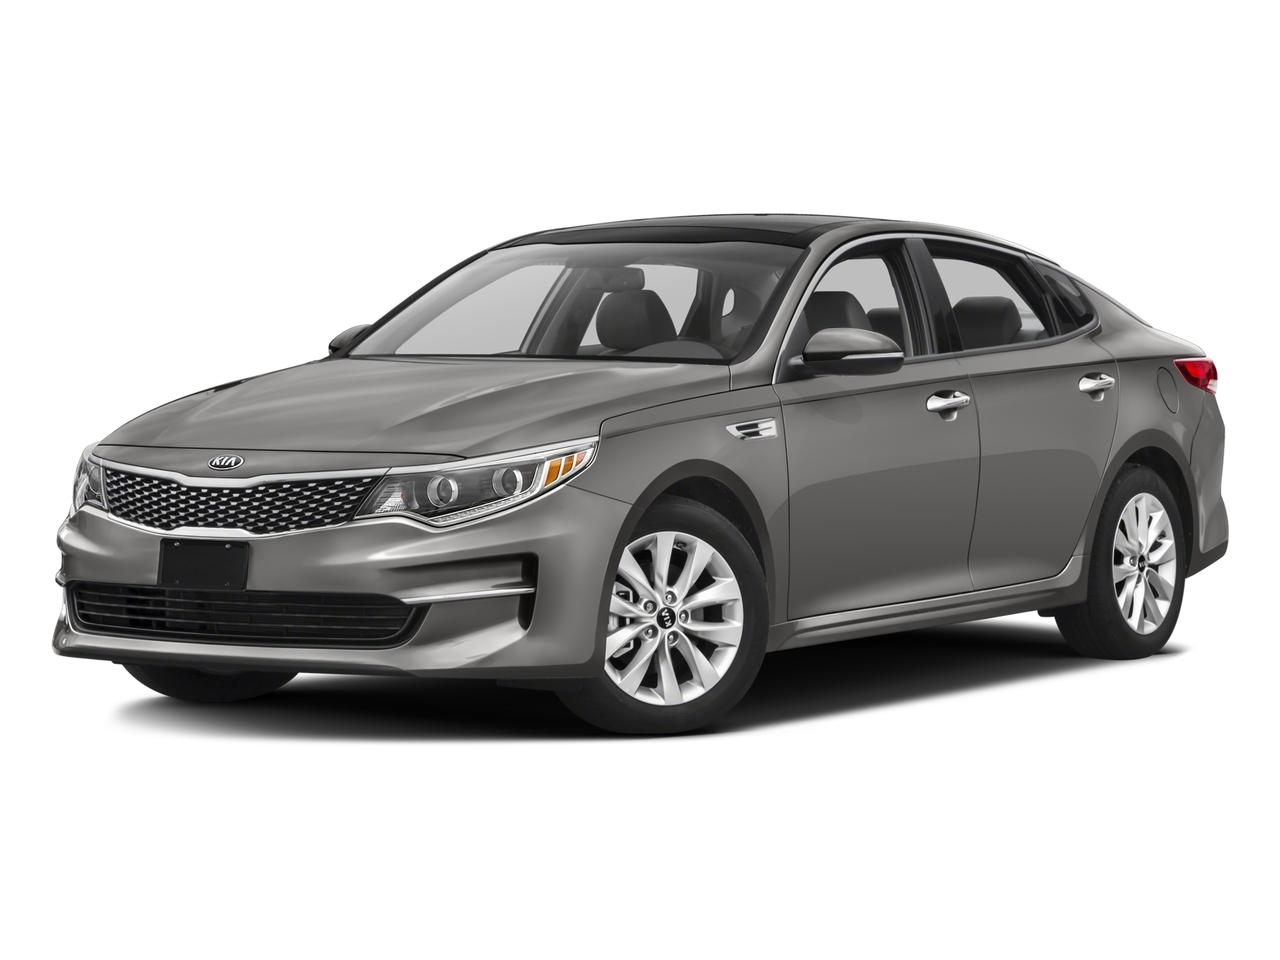 2016 Kia Optima Vehicle Photo in Medina, OH 44256